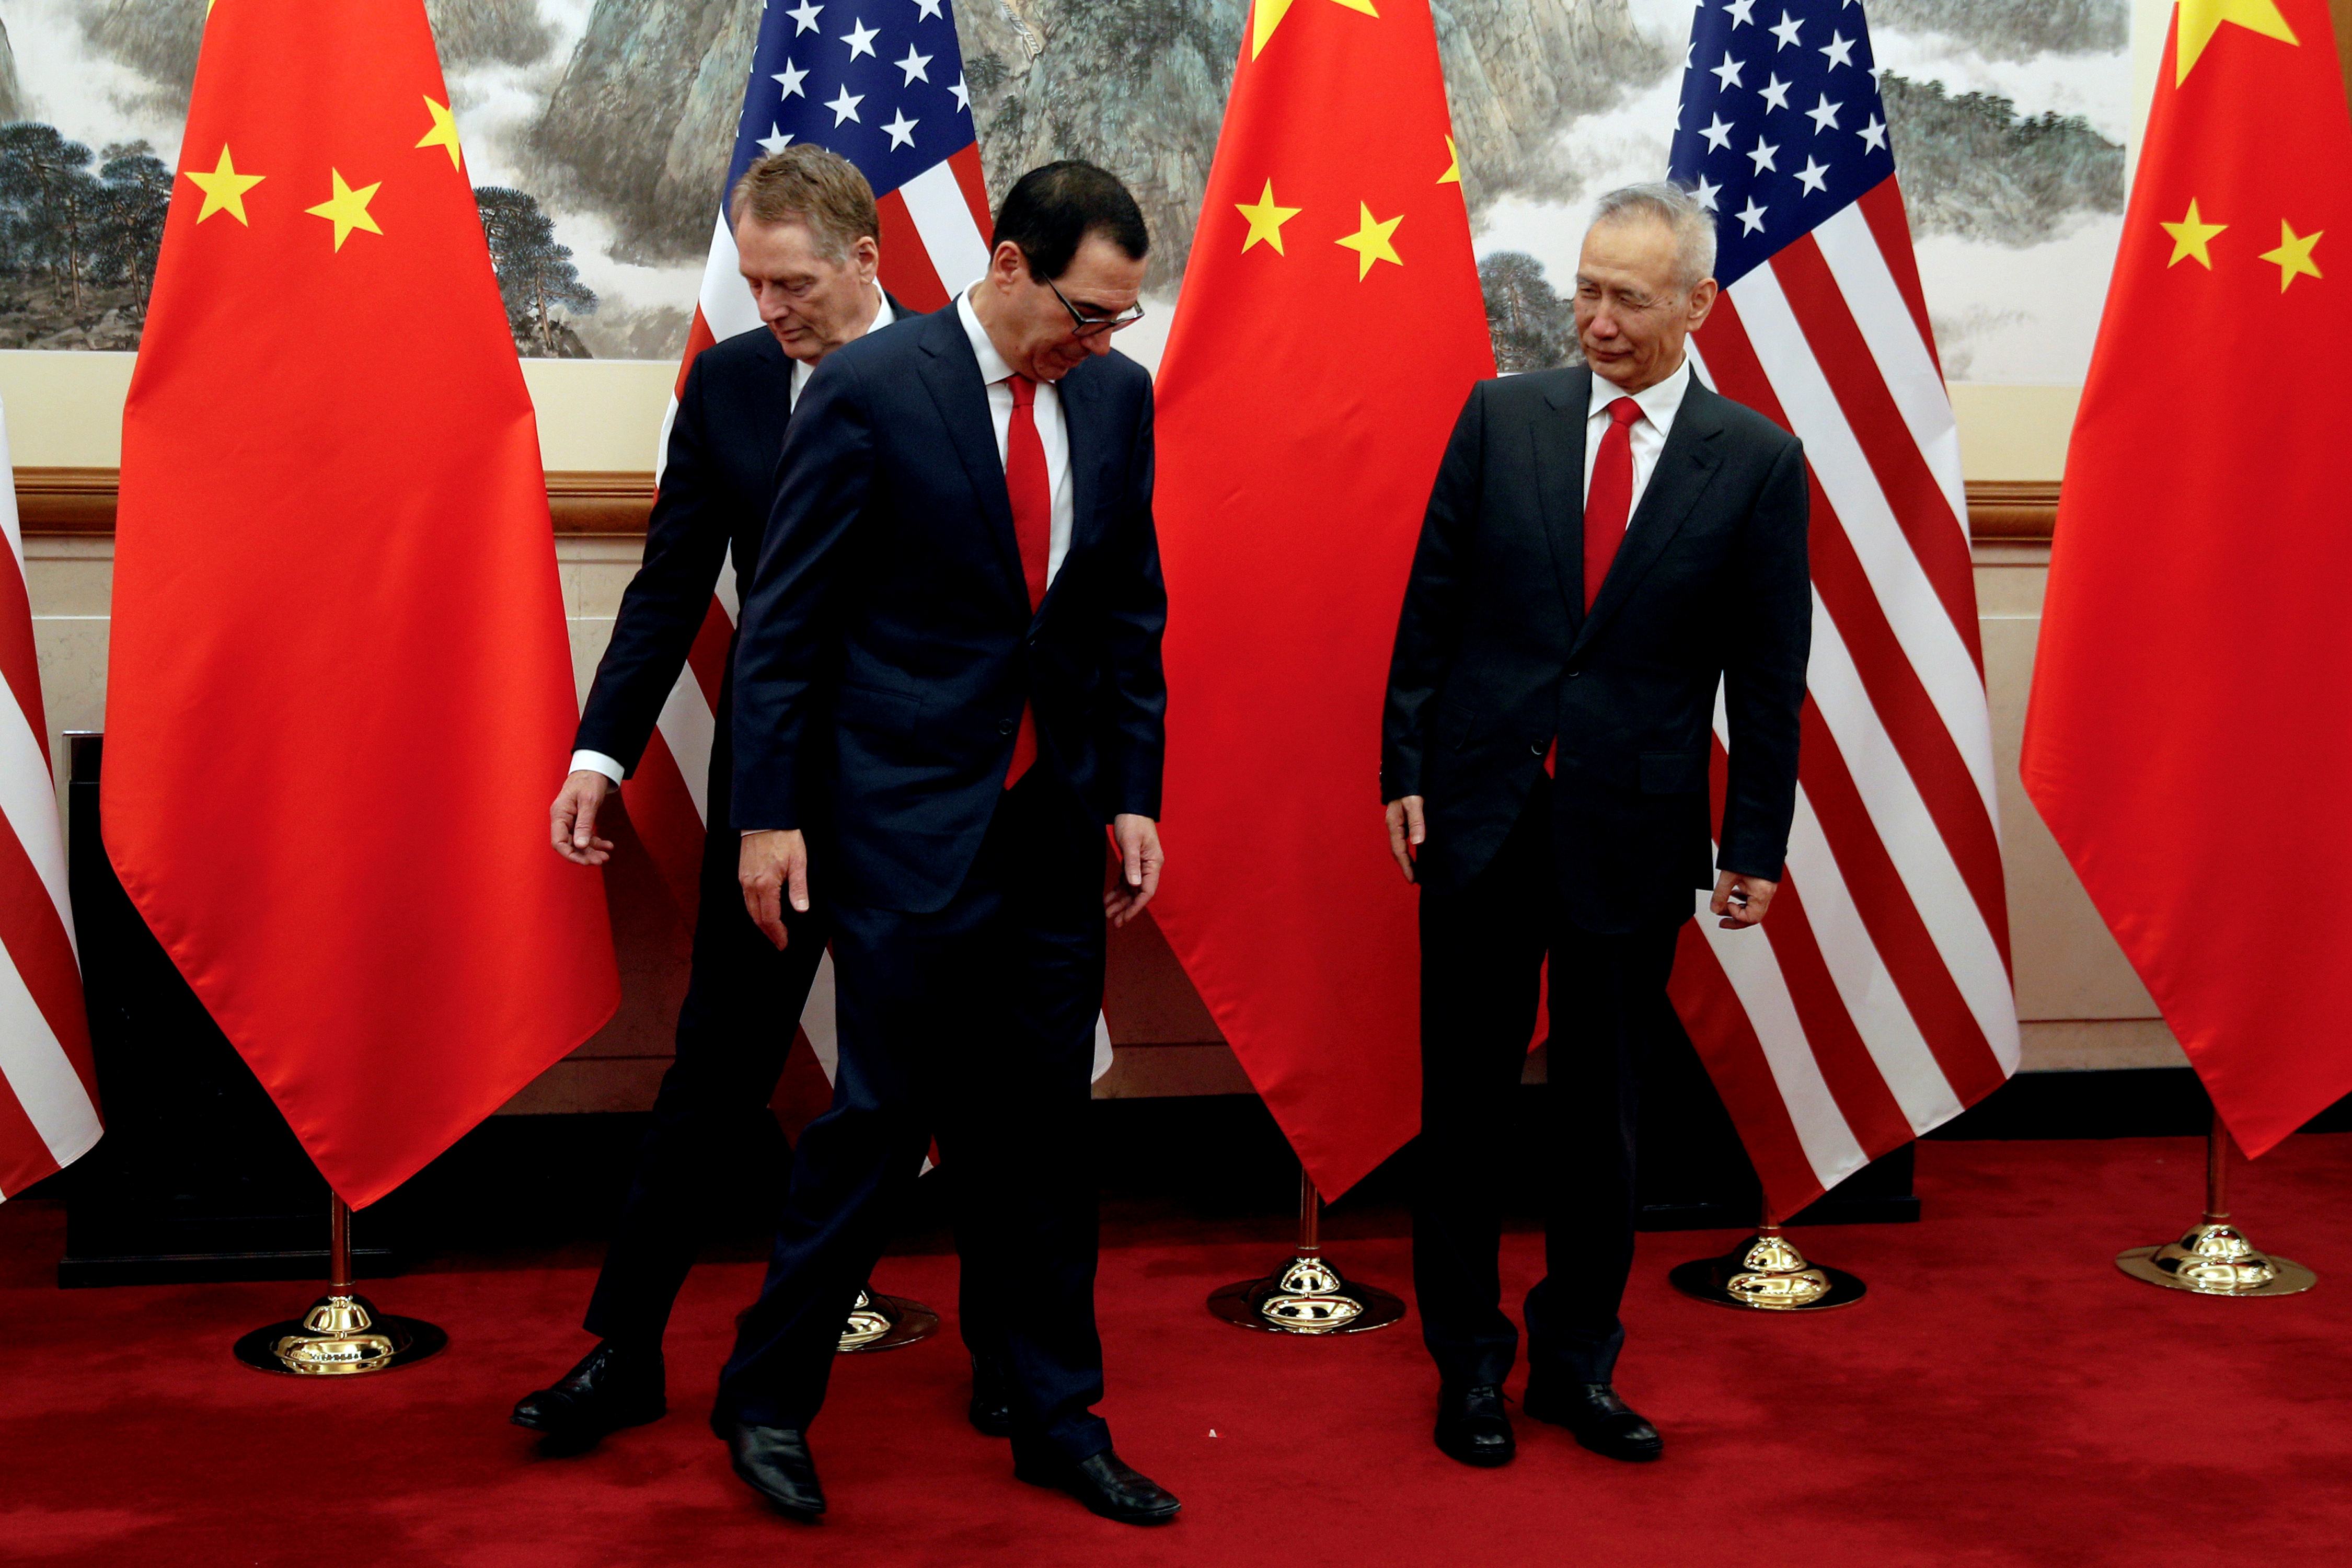 FILE PHOTO: Chinese Vice Premier Liu He, right, looks as U.S. Treasury Secretary Steven Mnuchin, center, swaps places with his Trade Representative Robert Lighthizer during a photograph session before they proceed to their meeting at the Diaoyutai State Guesthouse in Beijing, Wednesday, May 1, 2019. Andy Wong/Pool via REUTERS